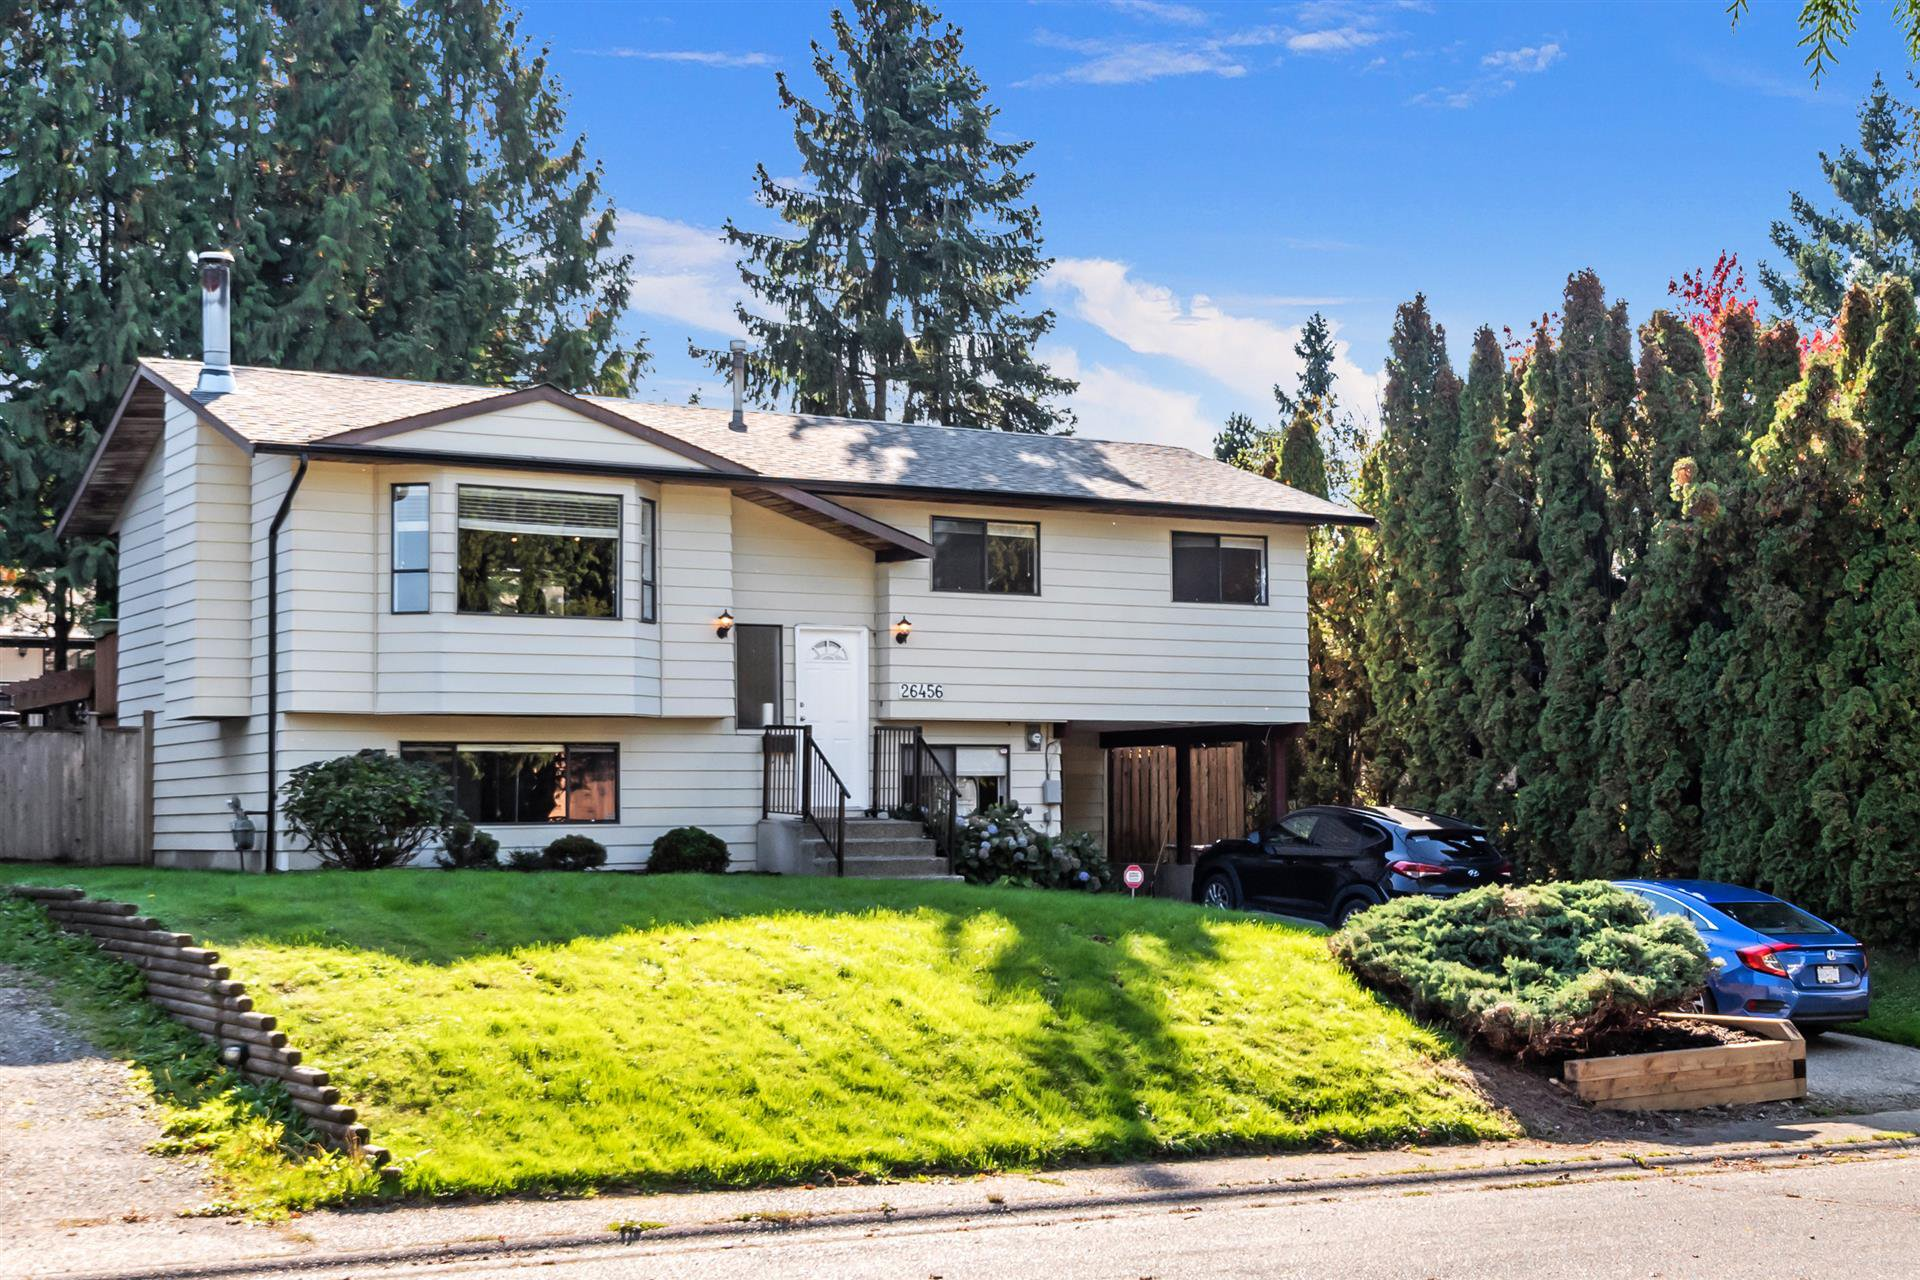 Main Photo: 26456 30A Avenue in Langley: Aldergrove Langley House for sale : MLS®# R2413273